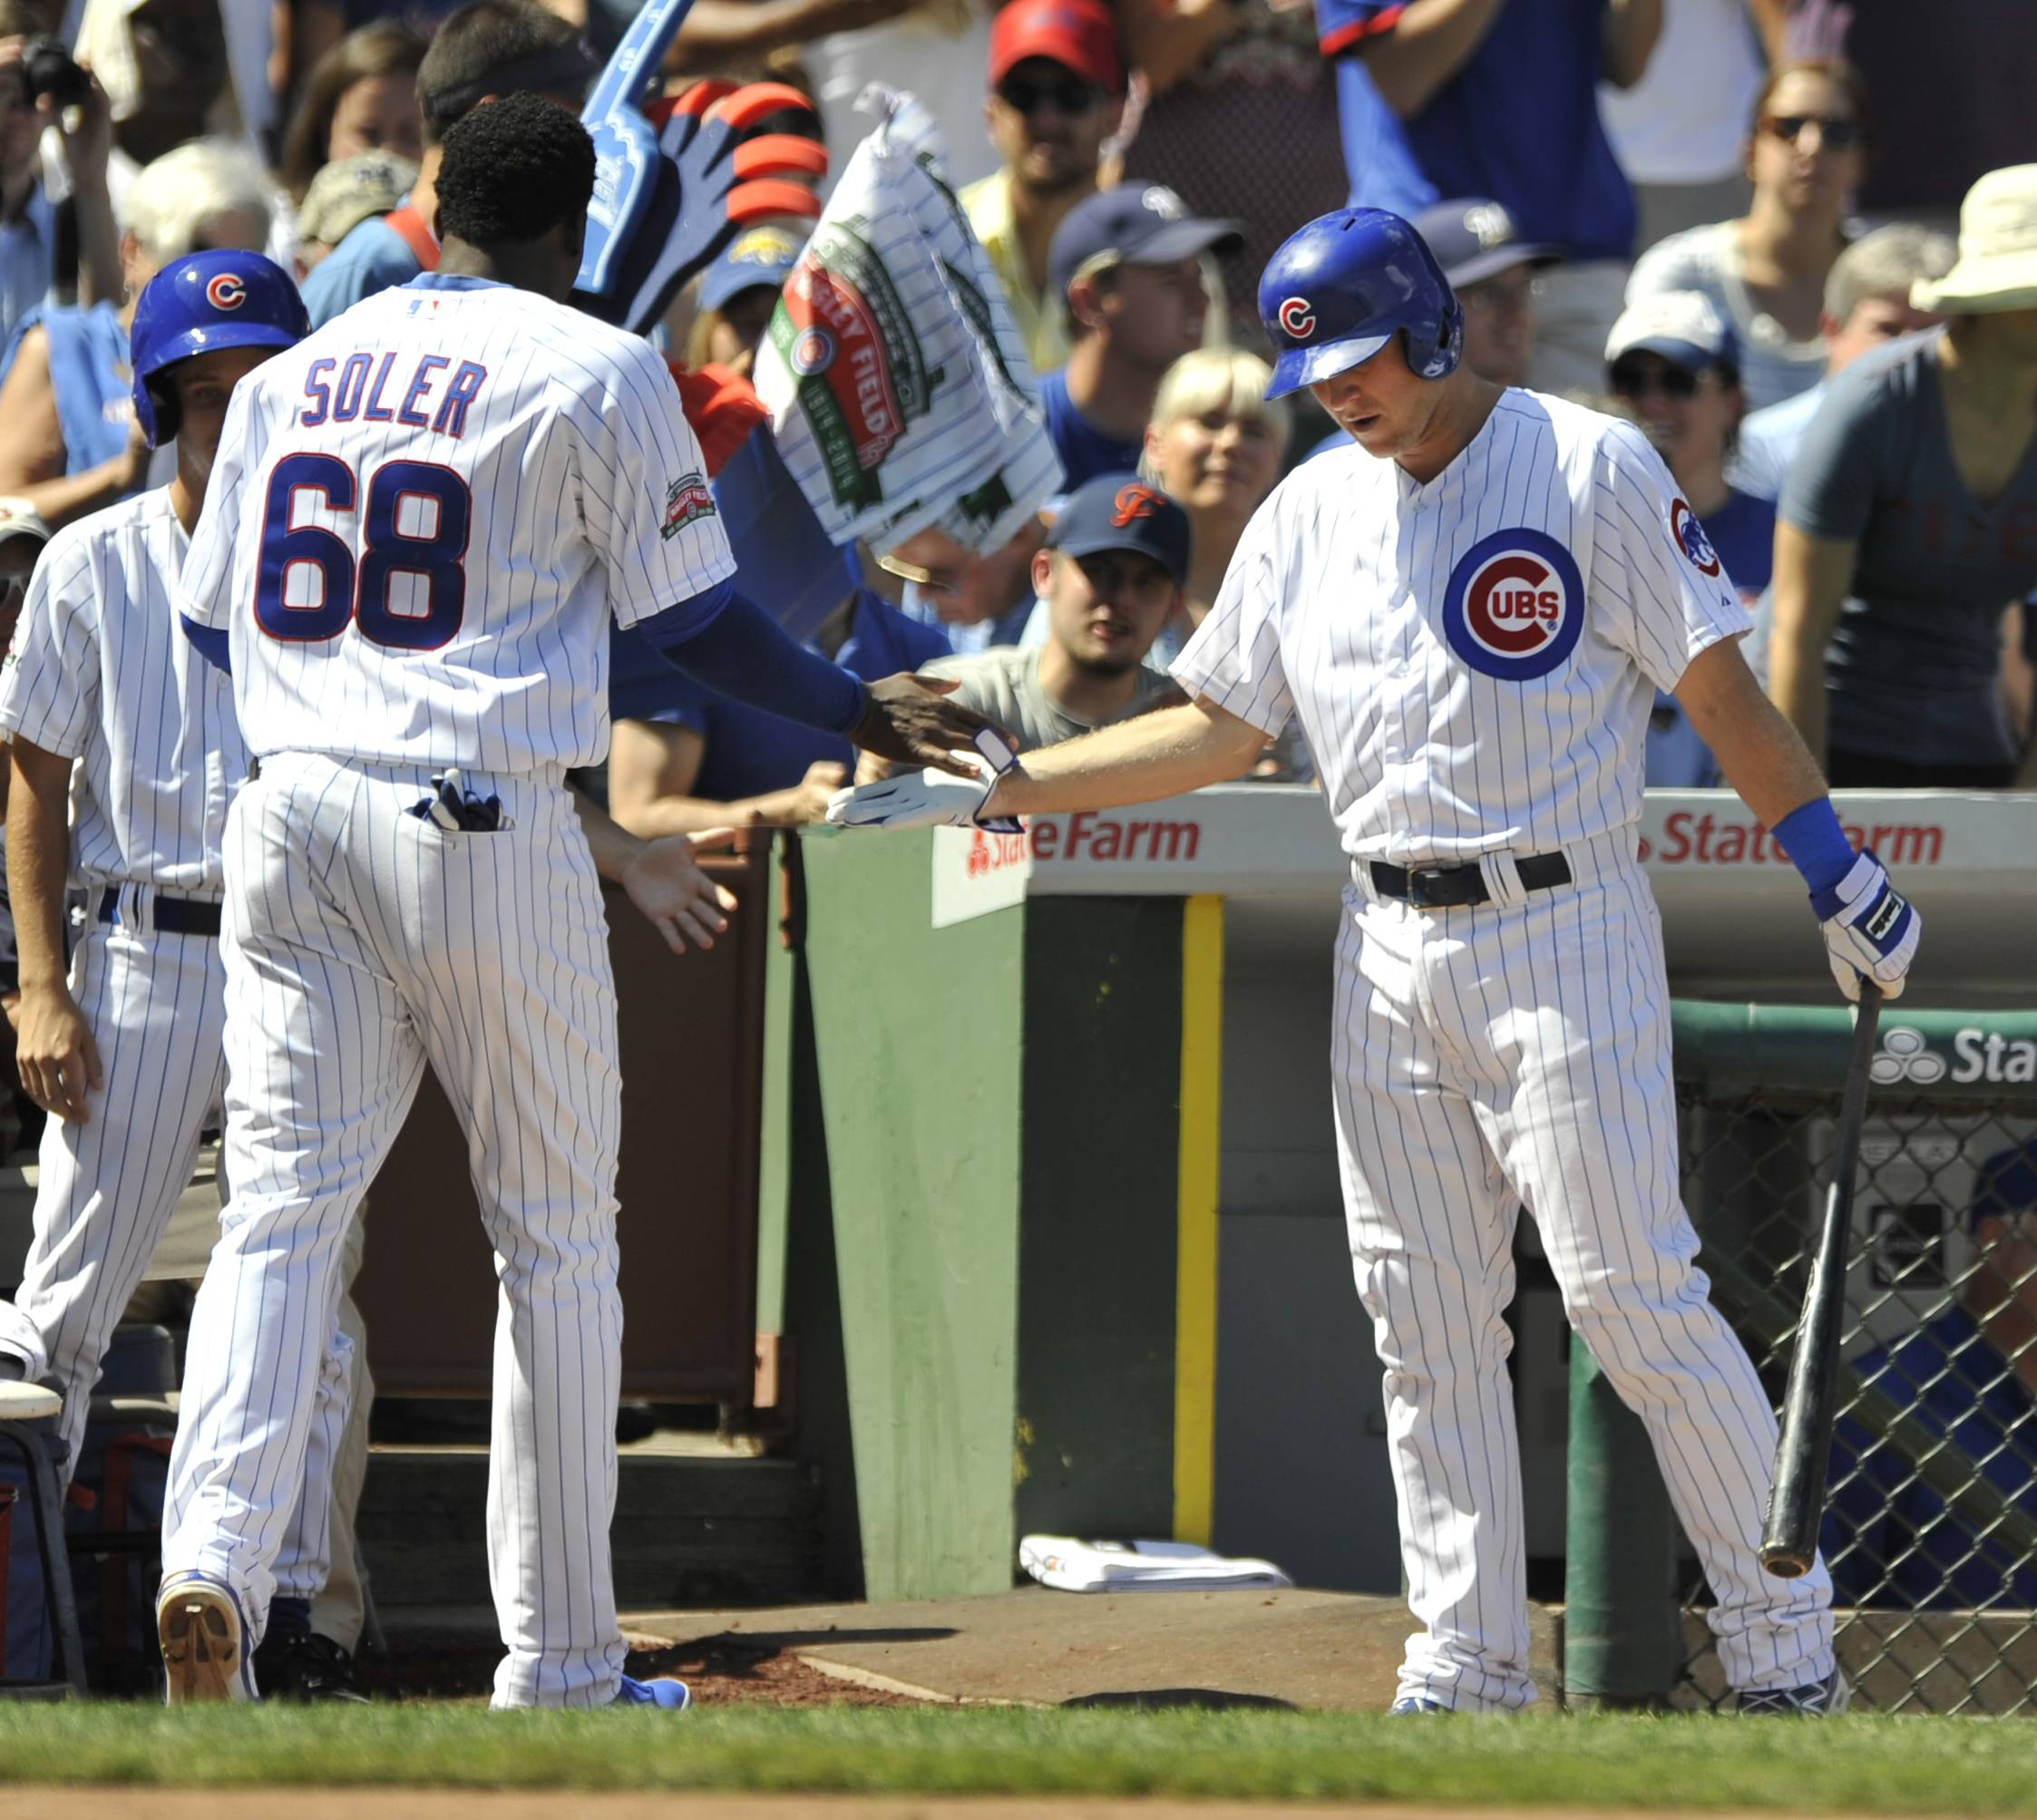 Cubs slugger Jorge Soler (68) celebrates with teammate Chris Valaika, right, after scoring on a Welington Castillo single during the second inning of a baseball game against the Milwaukee Brewers in Chicago, Monday, Sept. 1, 2014.